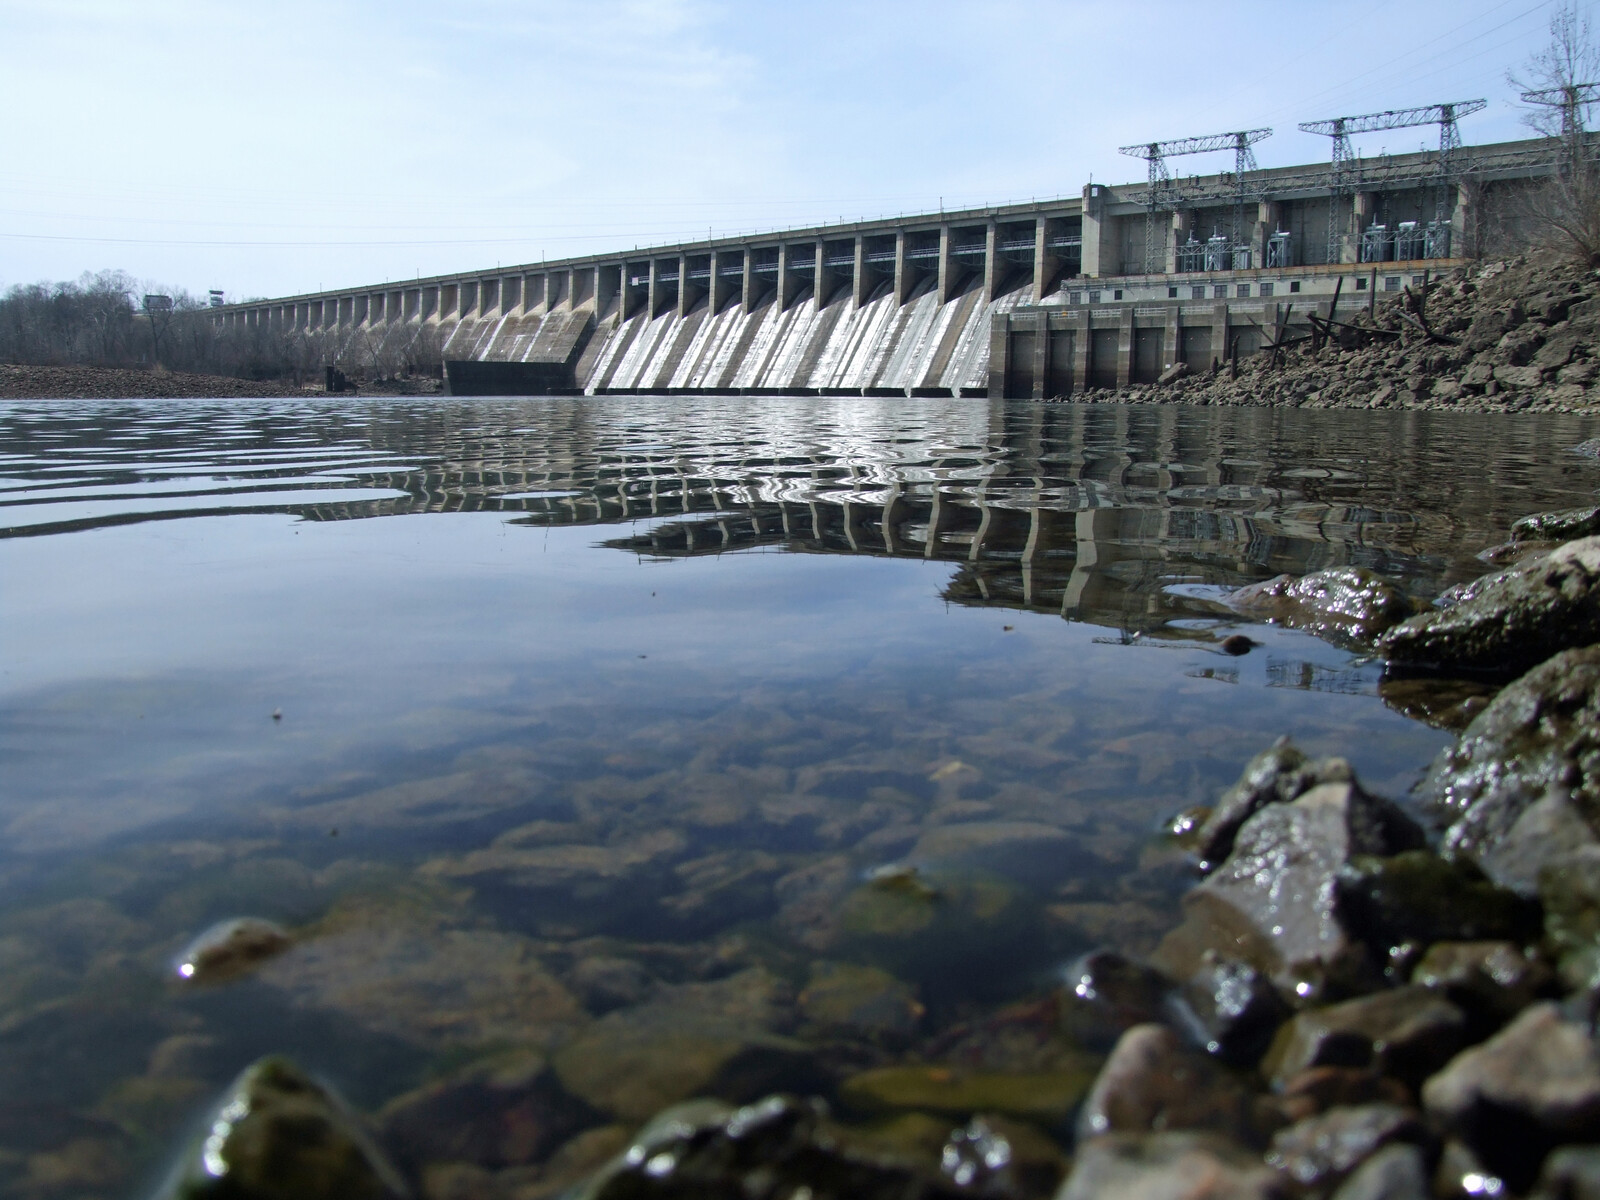 Bagnell dam forming the lake of the ozarks on a bright day with blue skies